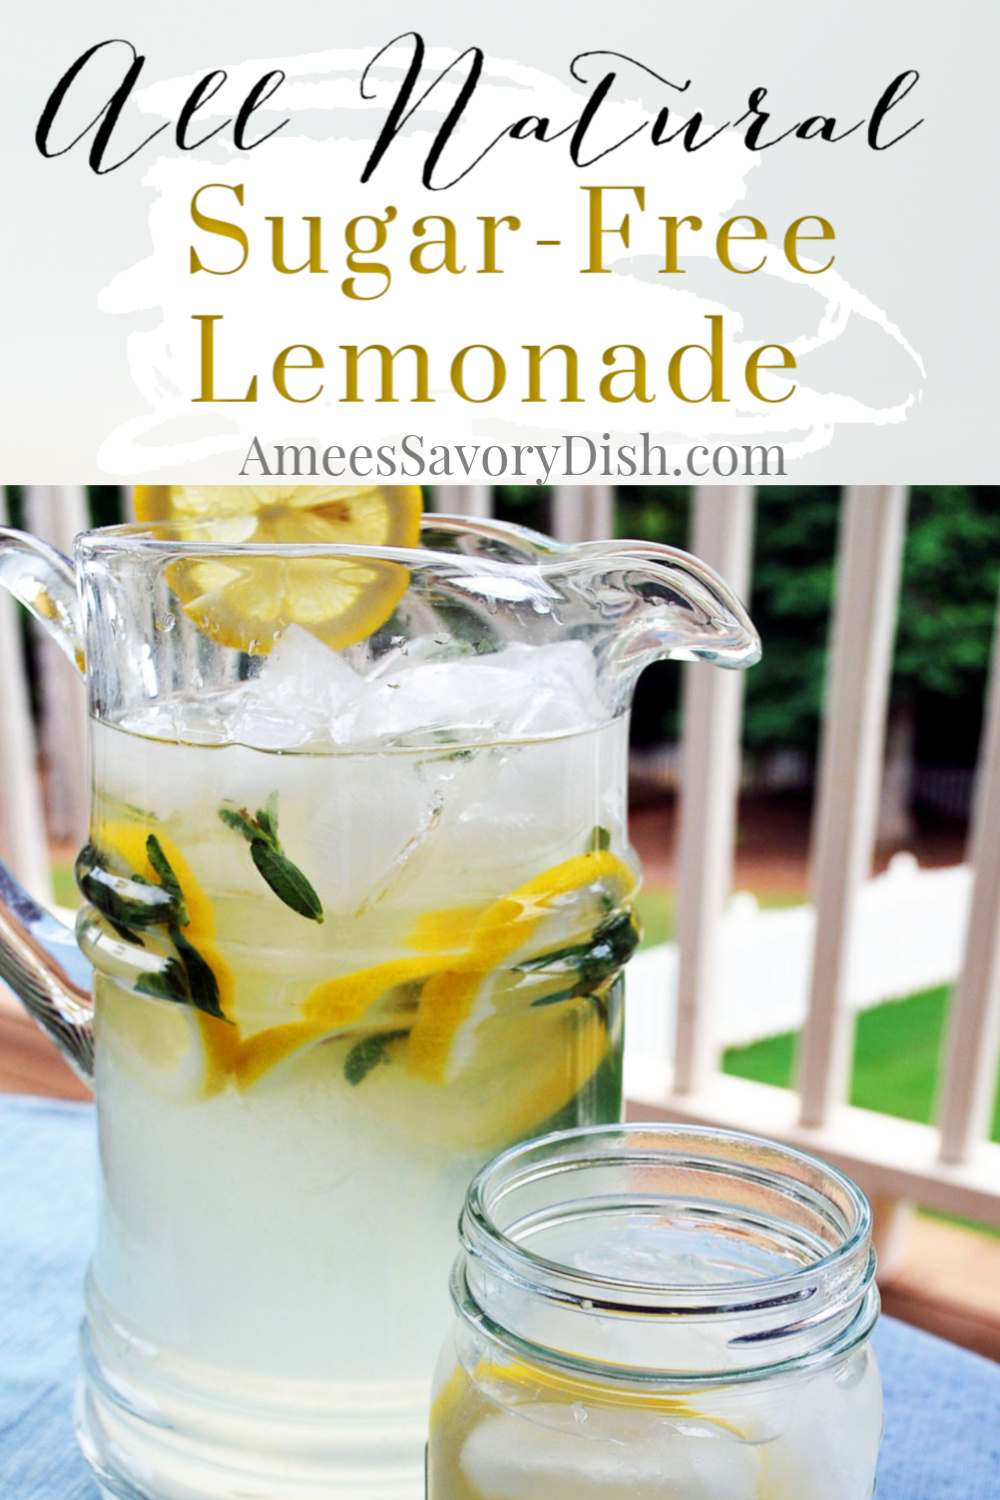 A refreshing summertime recipe for sugar-free lemonade made with all-natural stevia and freshly squeezed lemons. via @Ameessavorydish